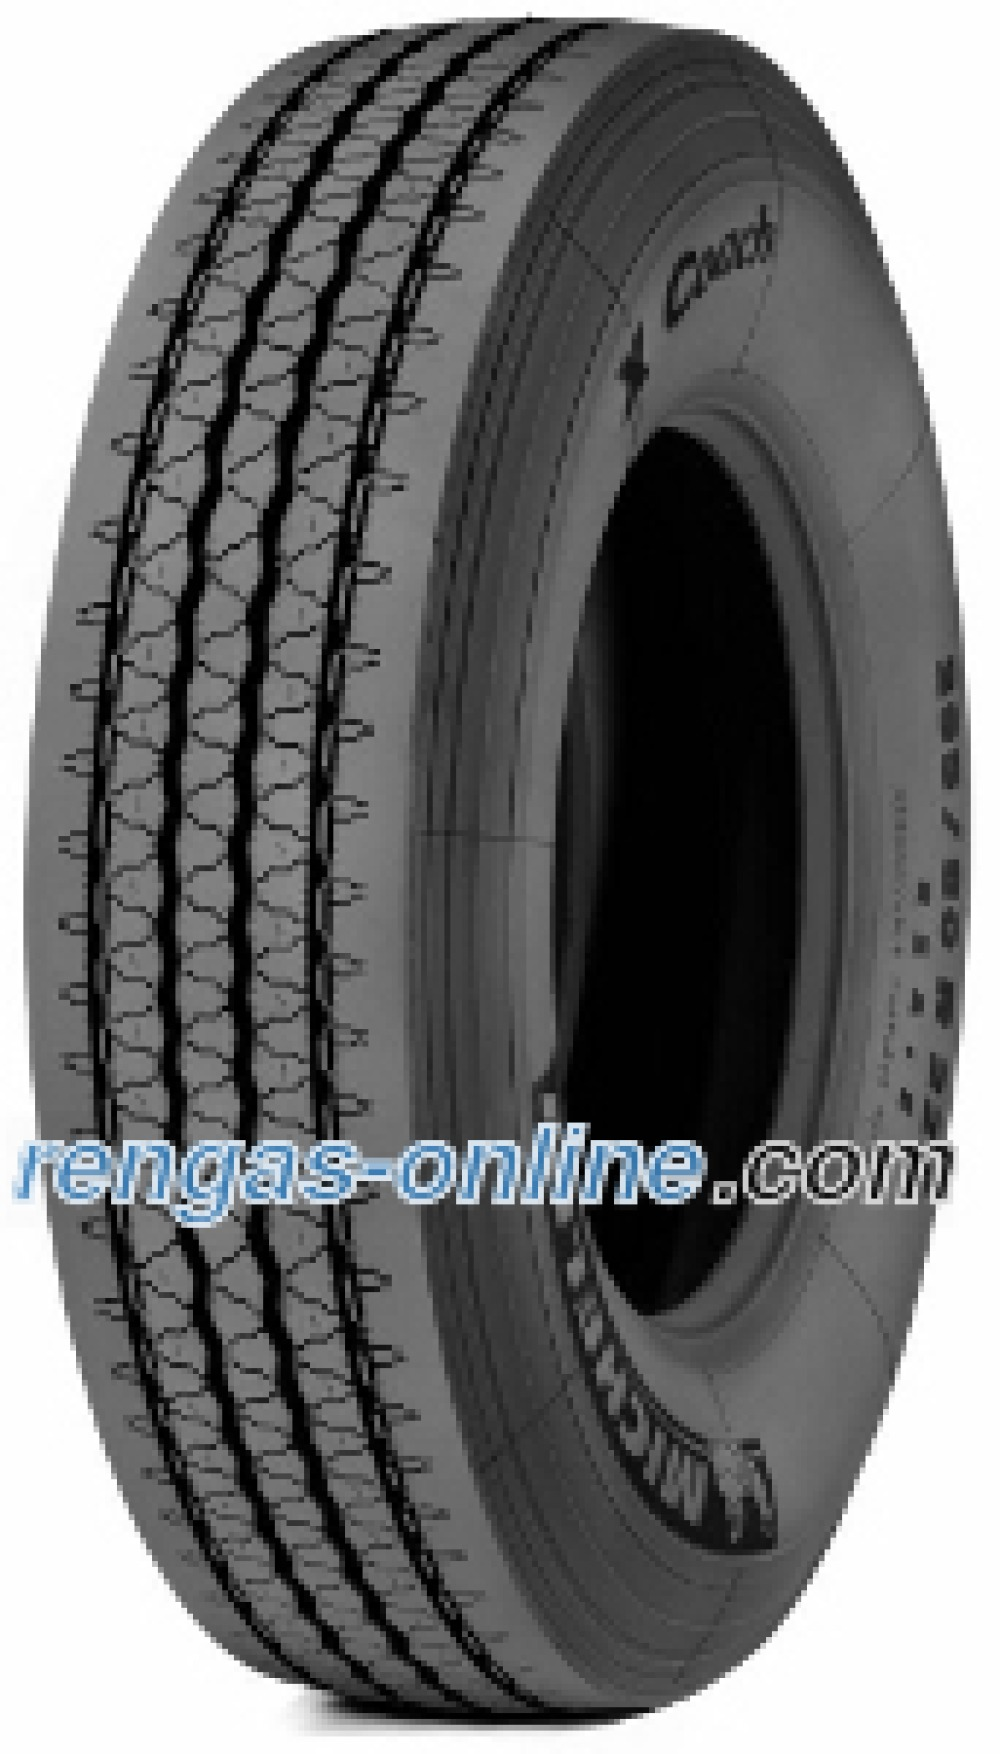 michelin-x-coach-hlz-29580-r225-154149m